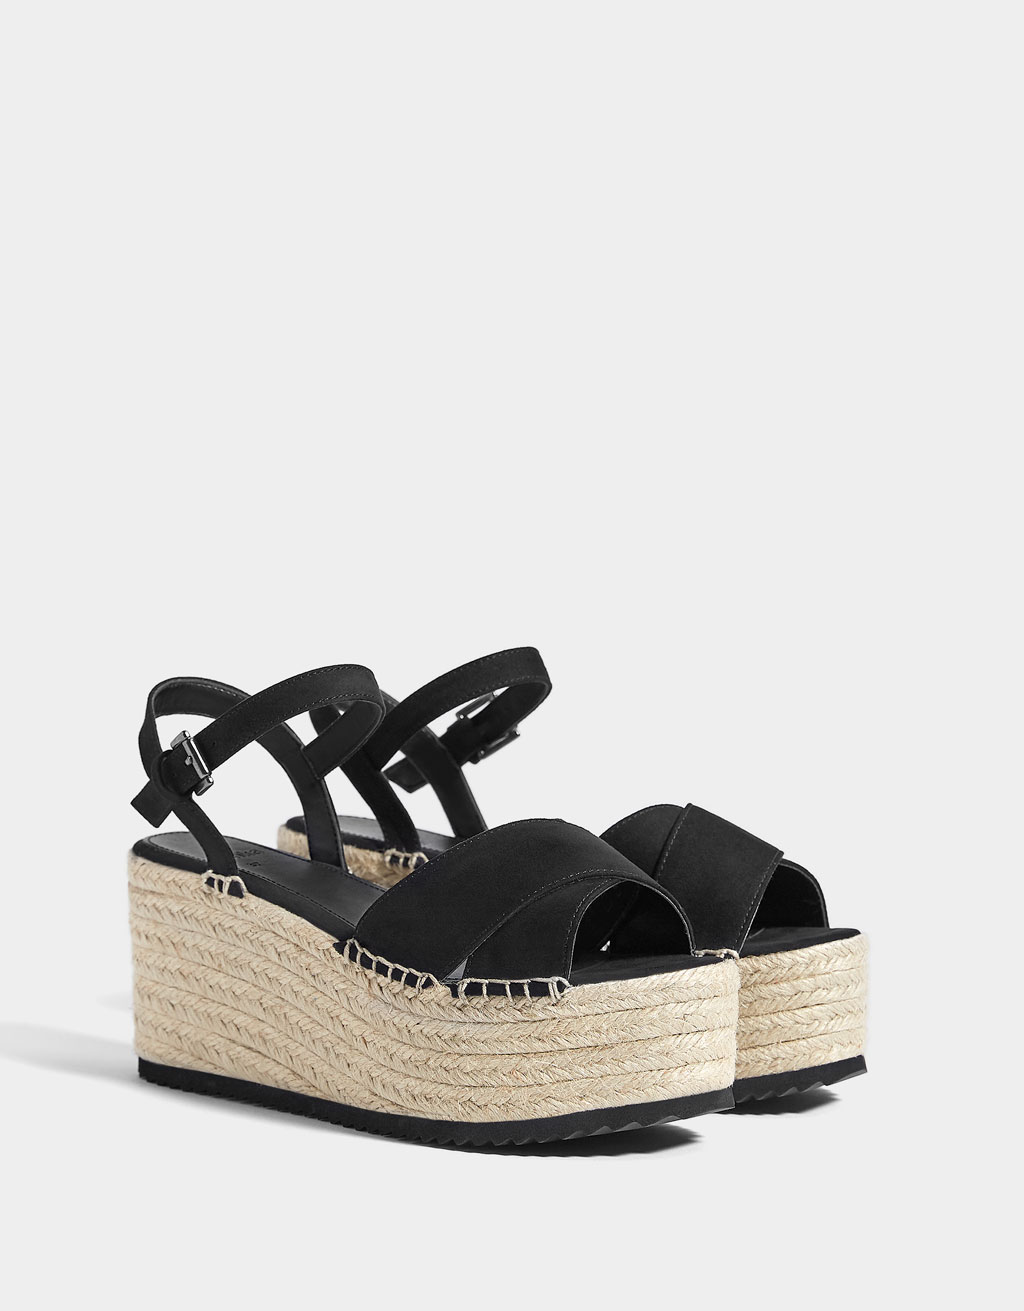 d7159e68b Black jute platform sandals - Flats - Bershka Greece